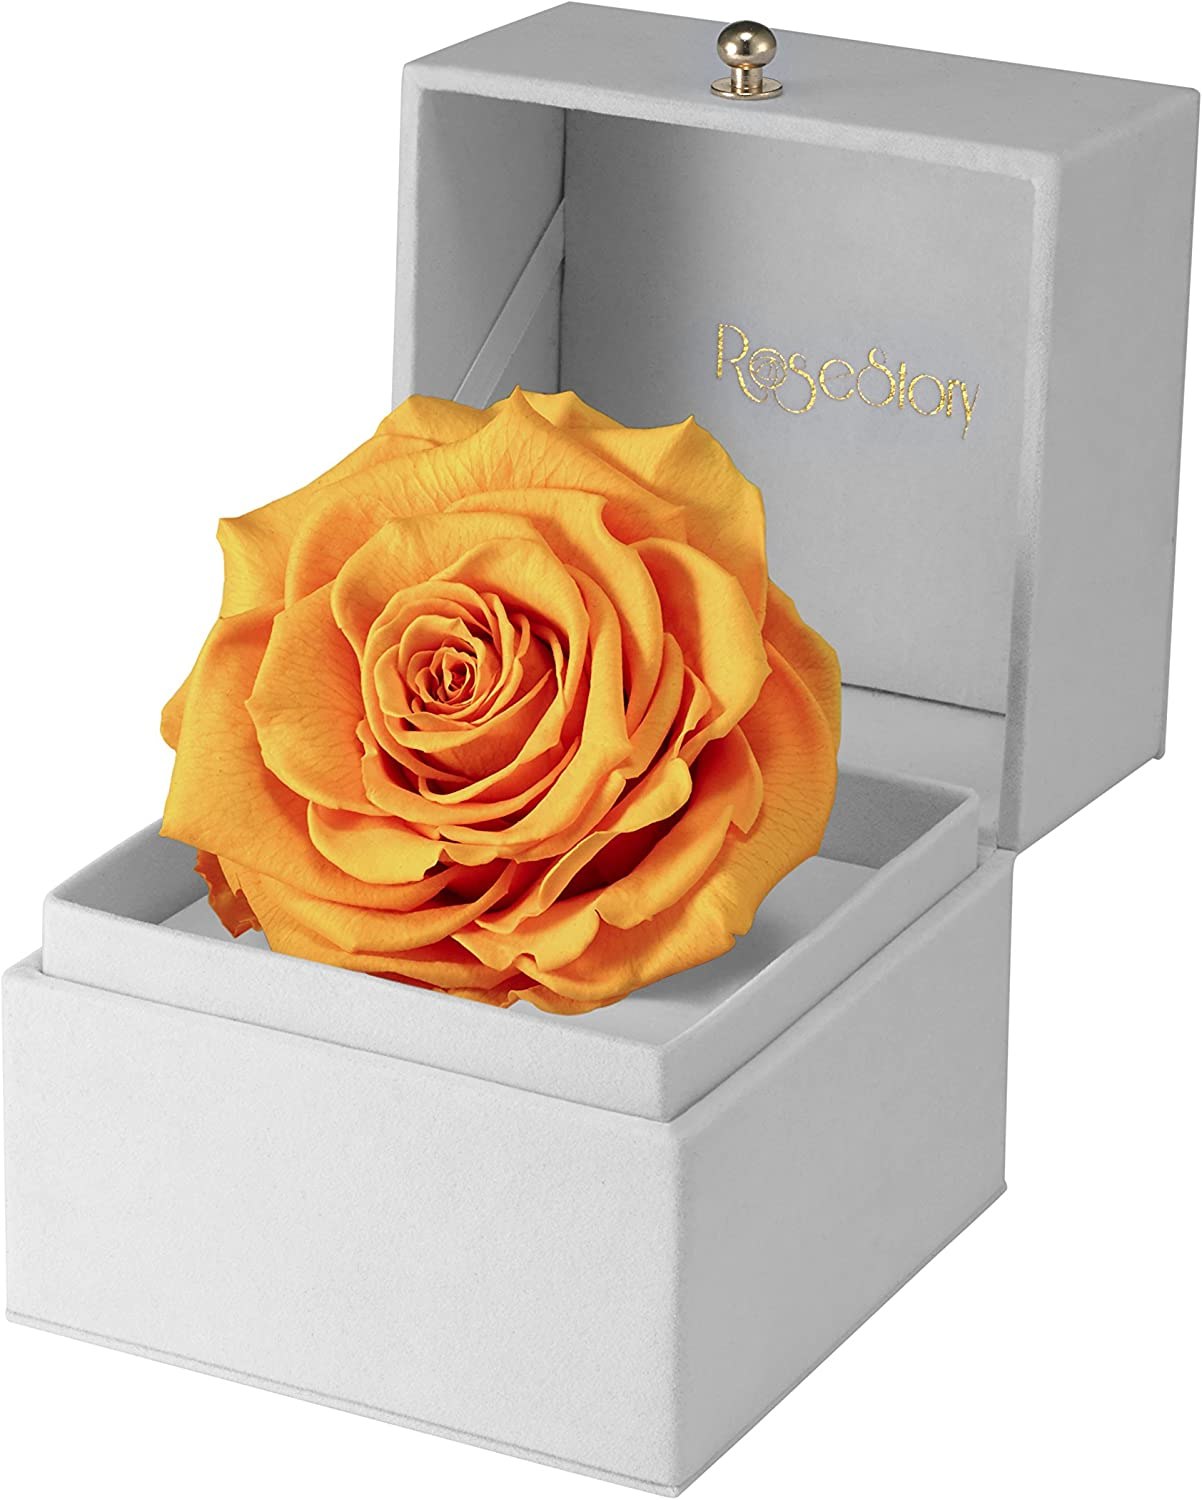 STANDING YELLOW ROSE ORNAMENT GIFT FLOWER NEW BOXED